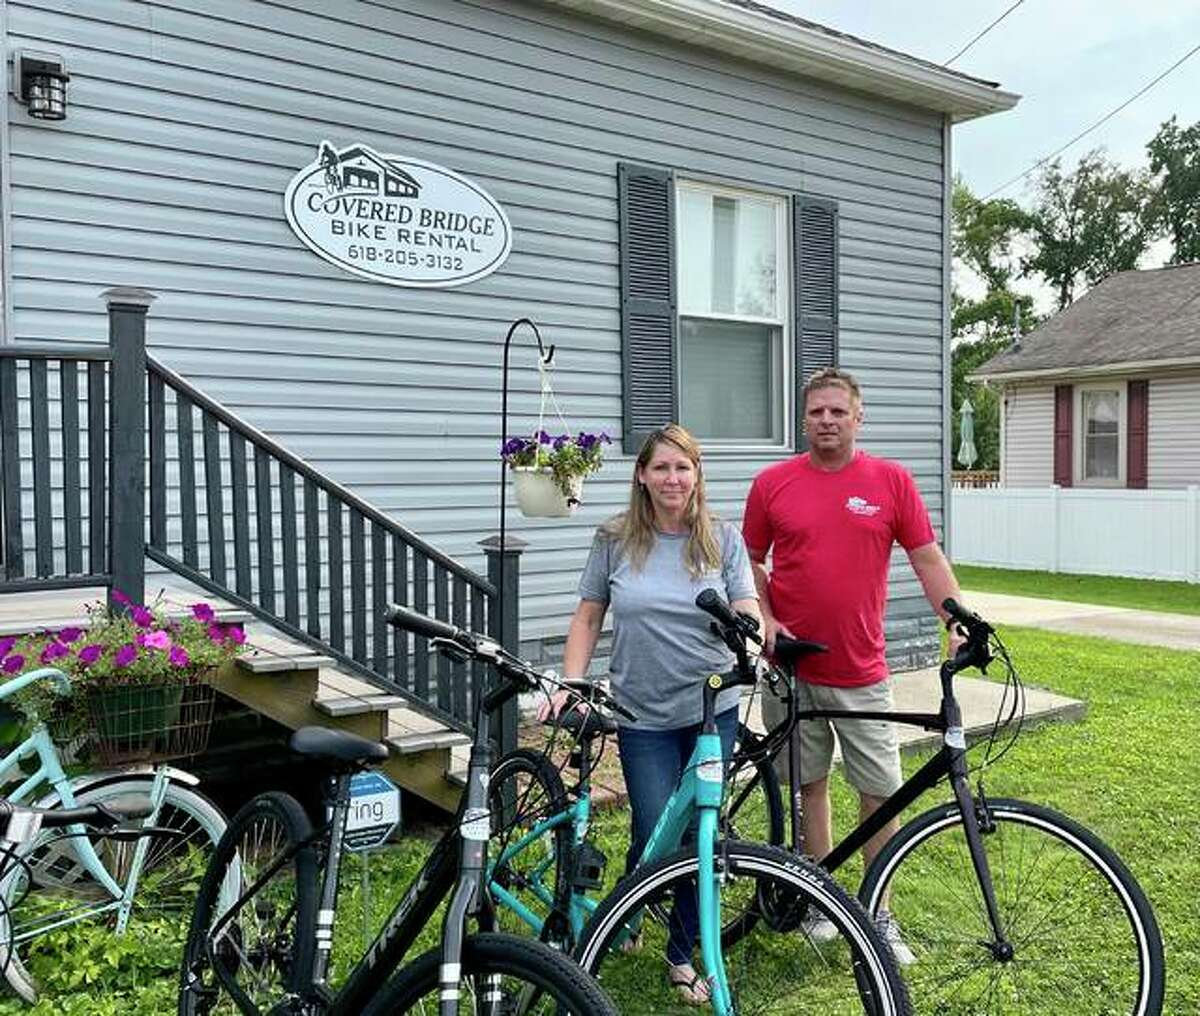 Owners of Covered Bridge Bike Rental Teri and Chris Moore stand in front of their store front with a couple of their rental bikes. Covered Bridge Bike Rental is located in downtown Glen Carbon across the street from the library.